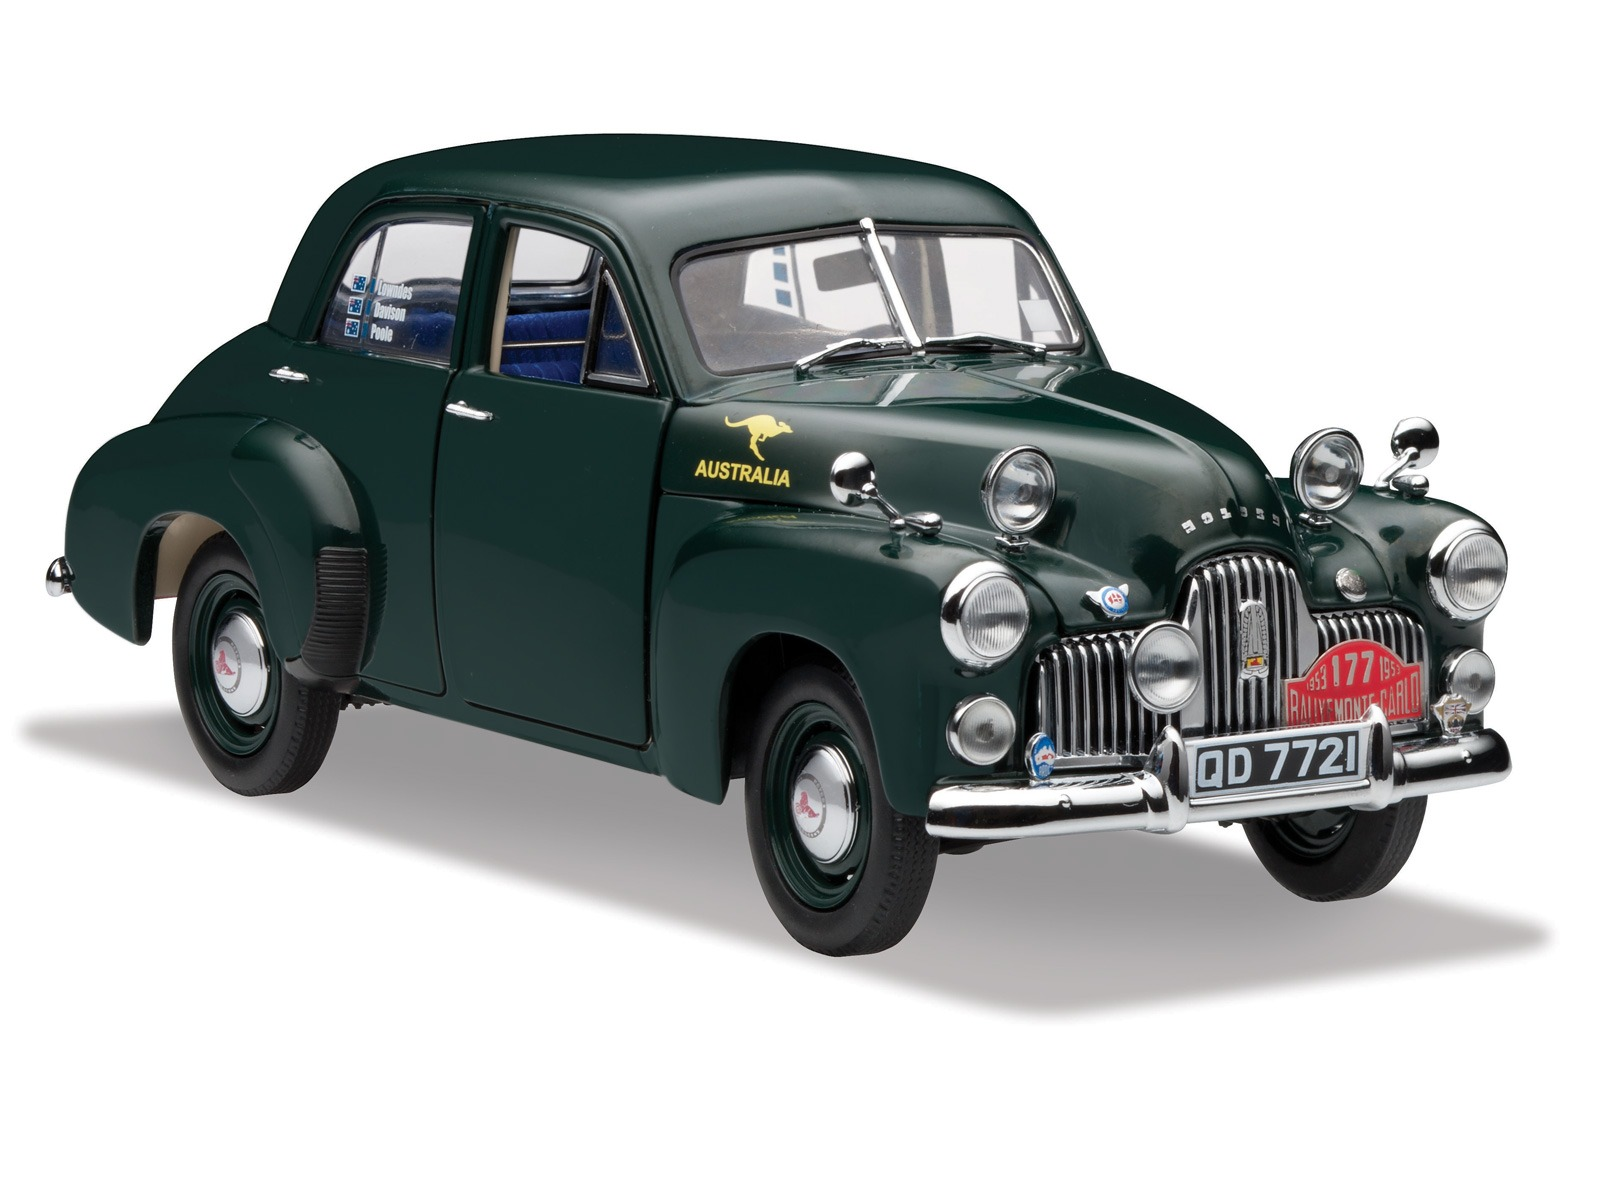 48 / 215 – Monte Carlo Rally – British Racing Green